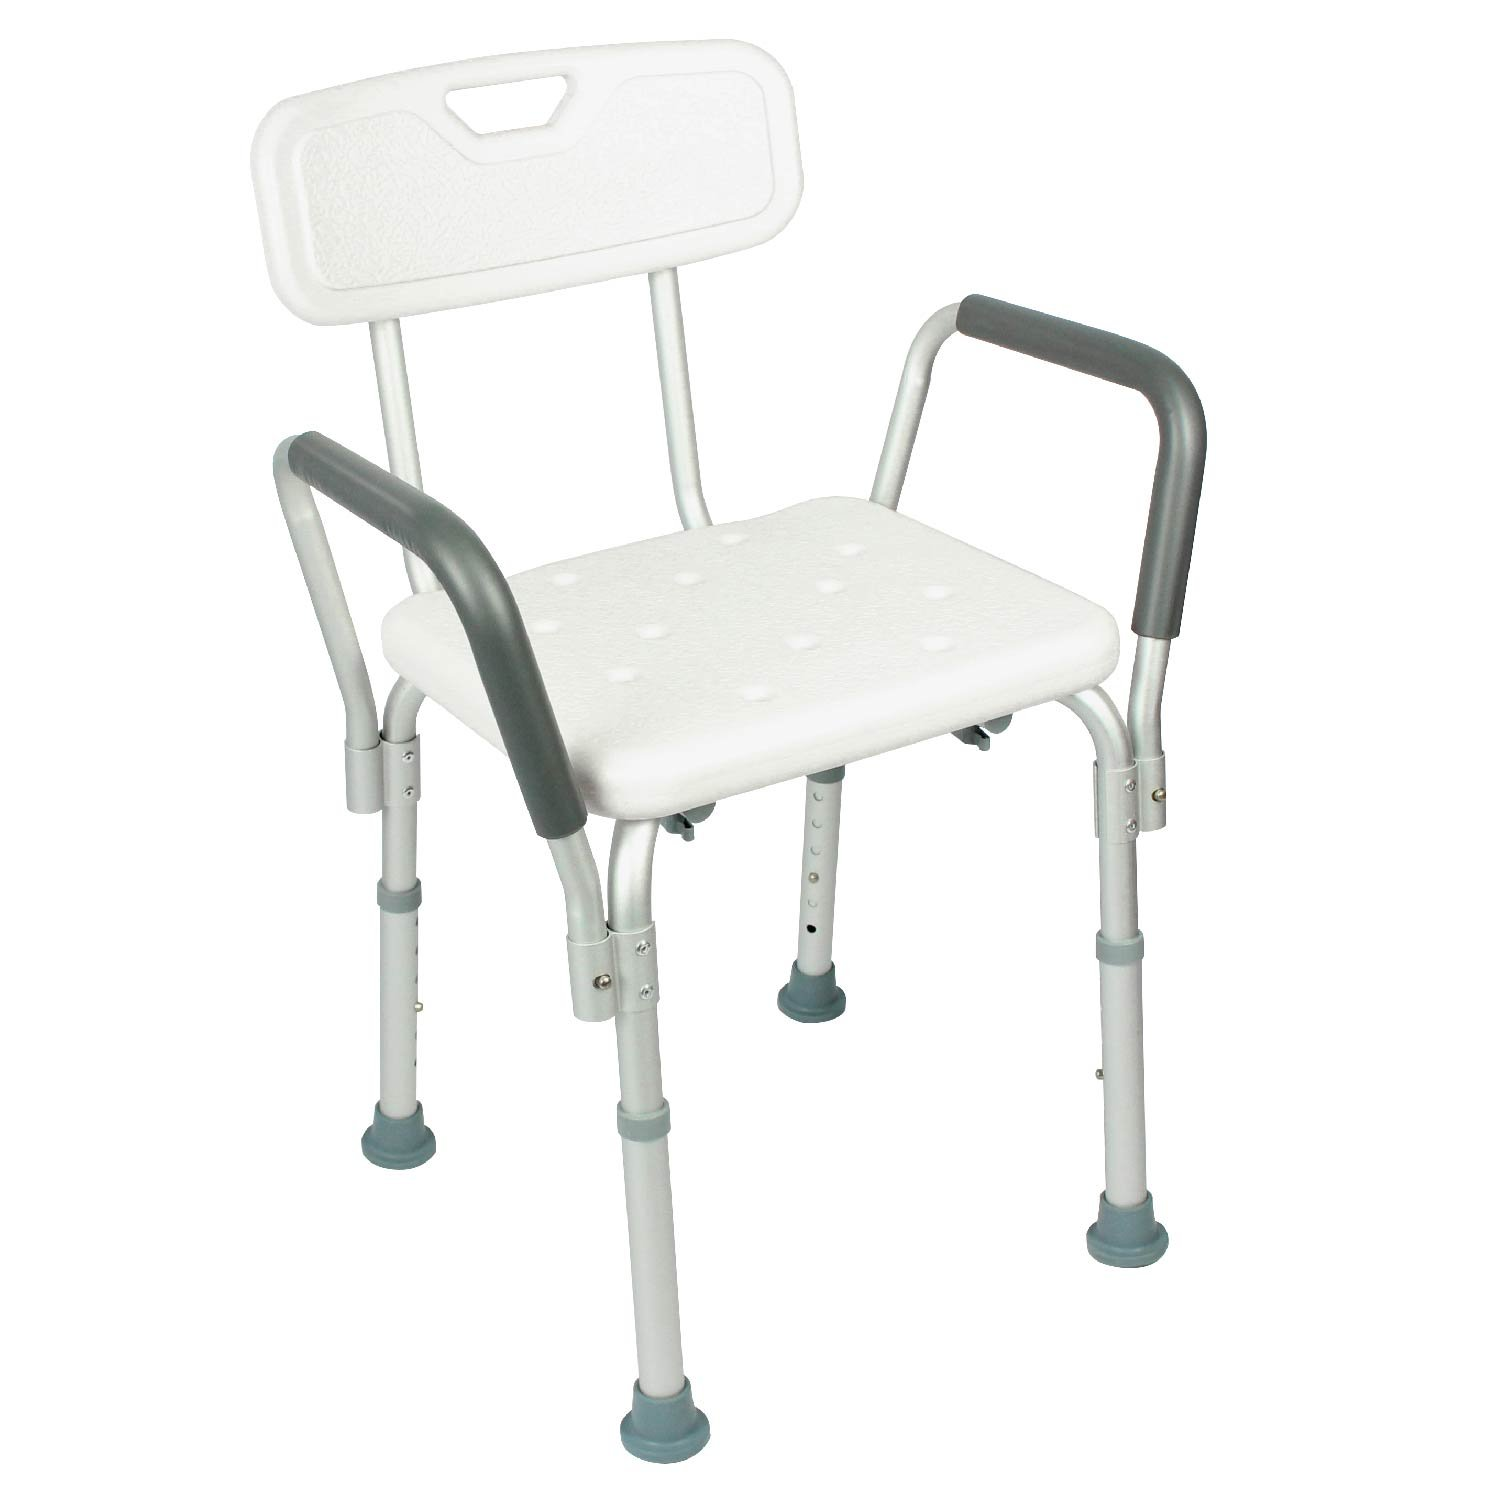 Shower Chair with Back by Vive - Bathtub Chair w/Arms for Handicap, Disabled, Seniors & Elderly - Adjustable Medical Bath Seat Handles for Bariatrics - Non Slip Tub Safety